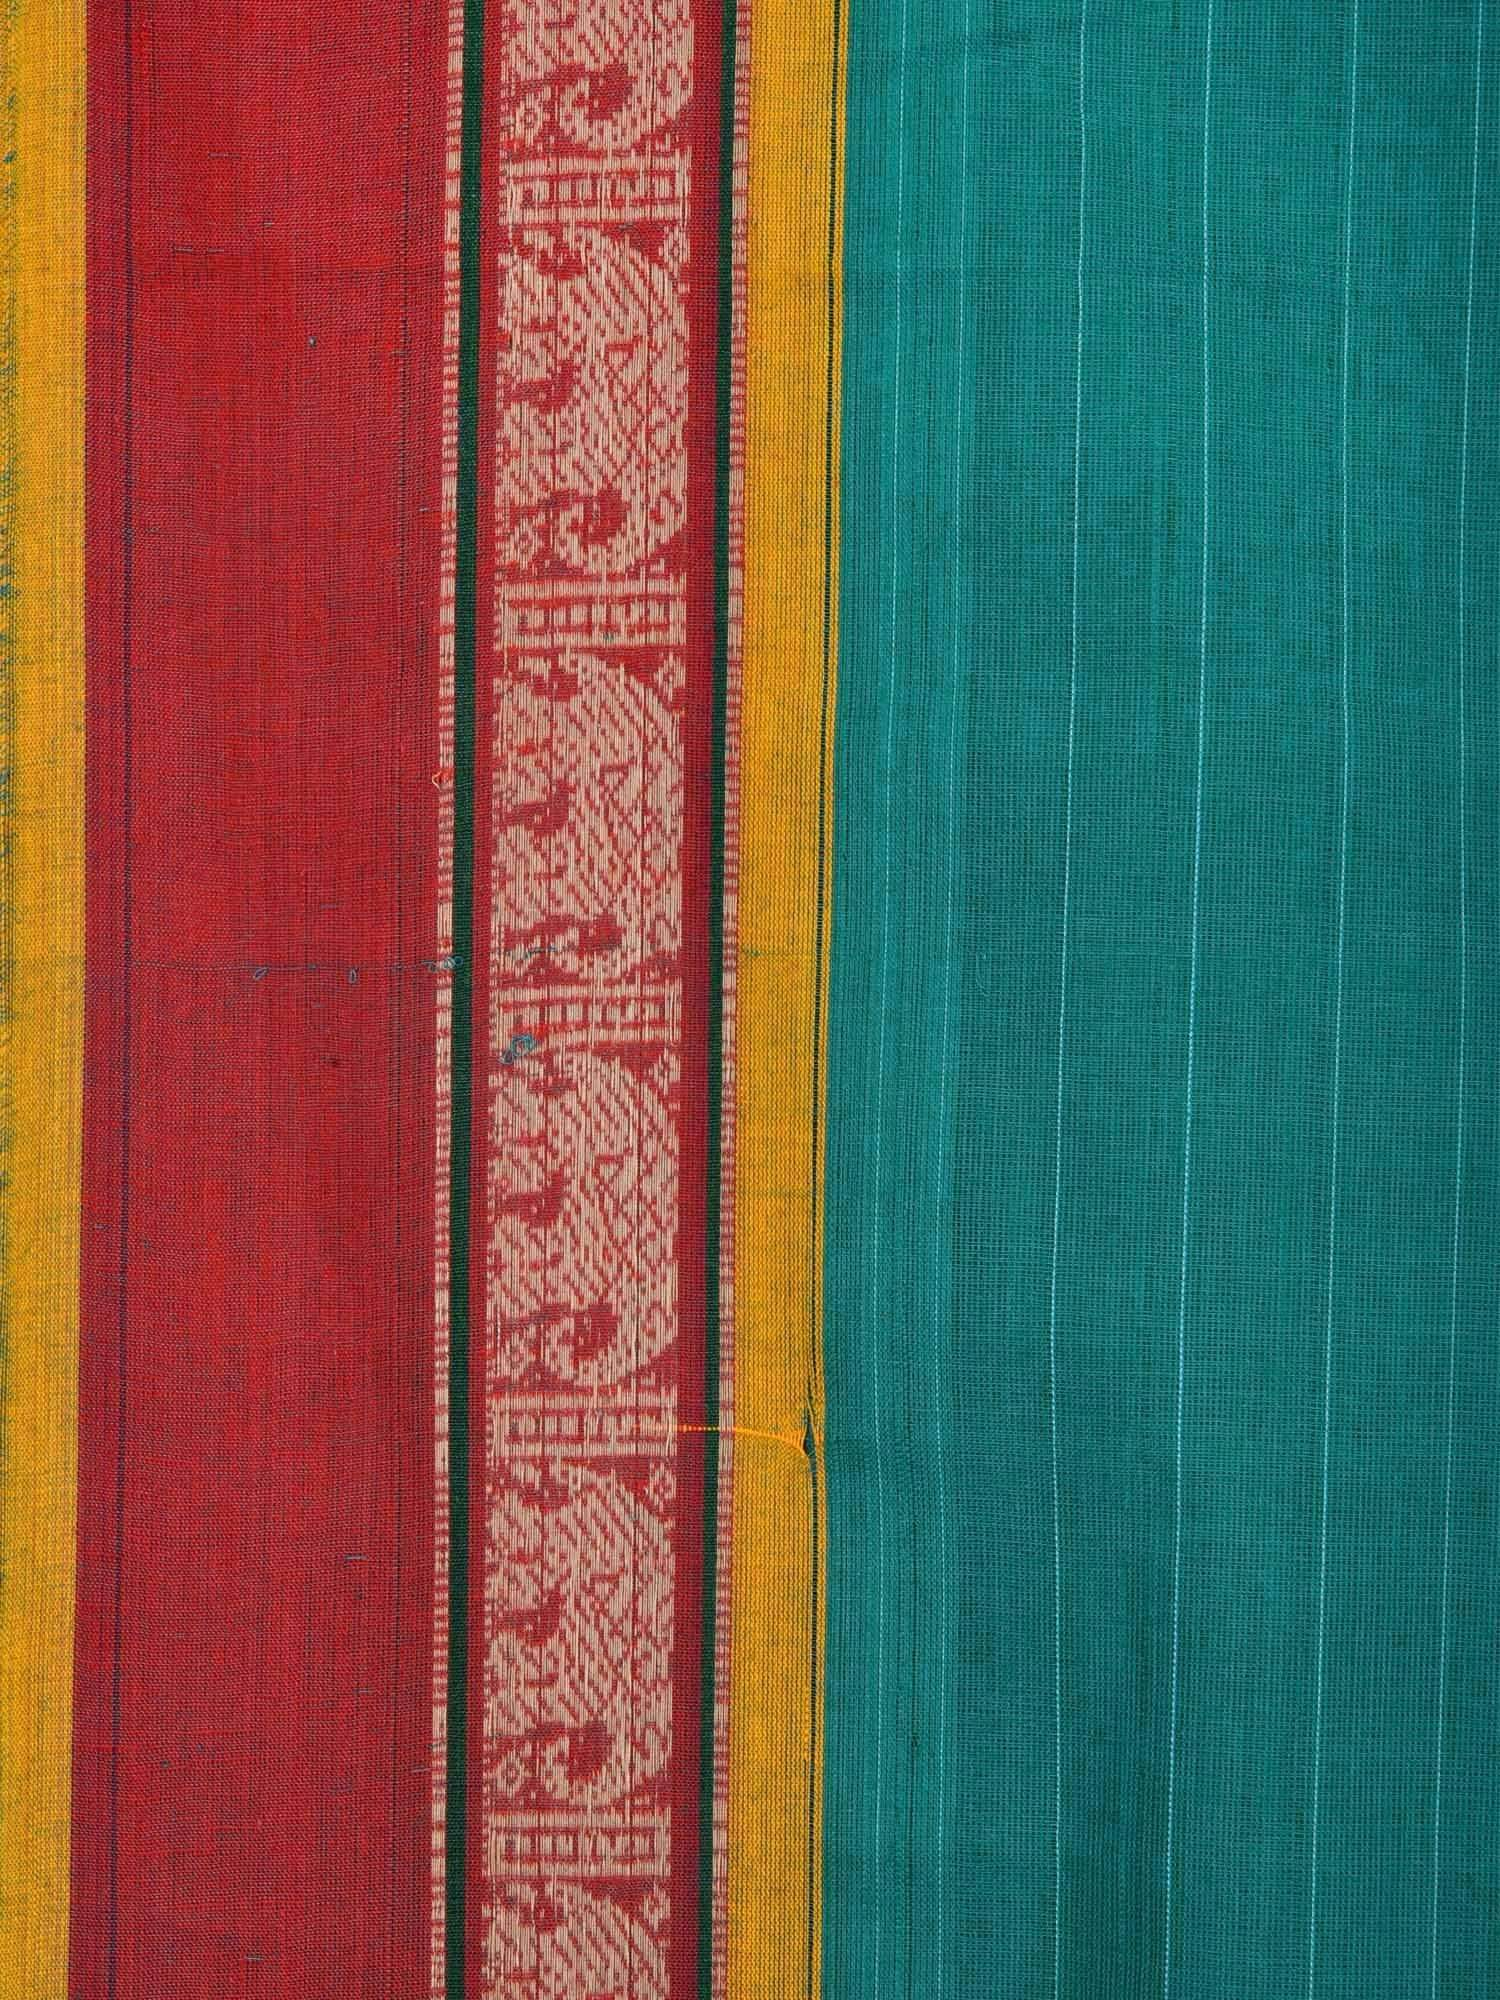 Turquoise Narayanpet Cotton Handloom Saree with Strips and Elephant Border Design No Blouse np0209